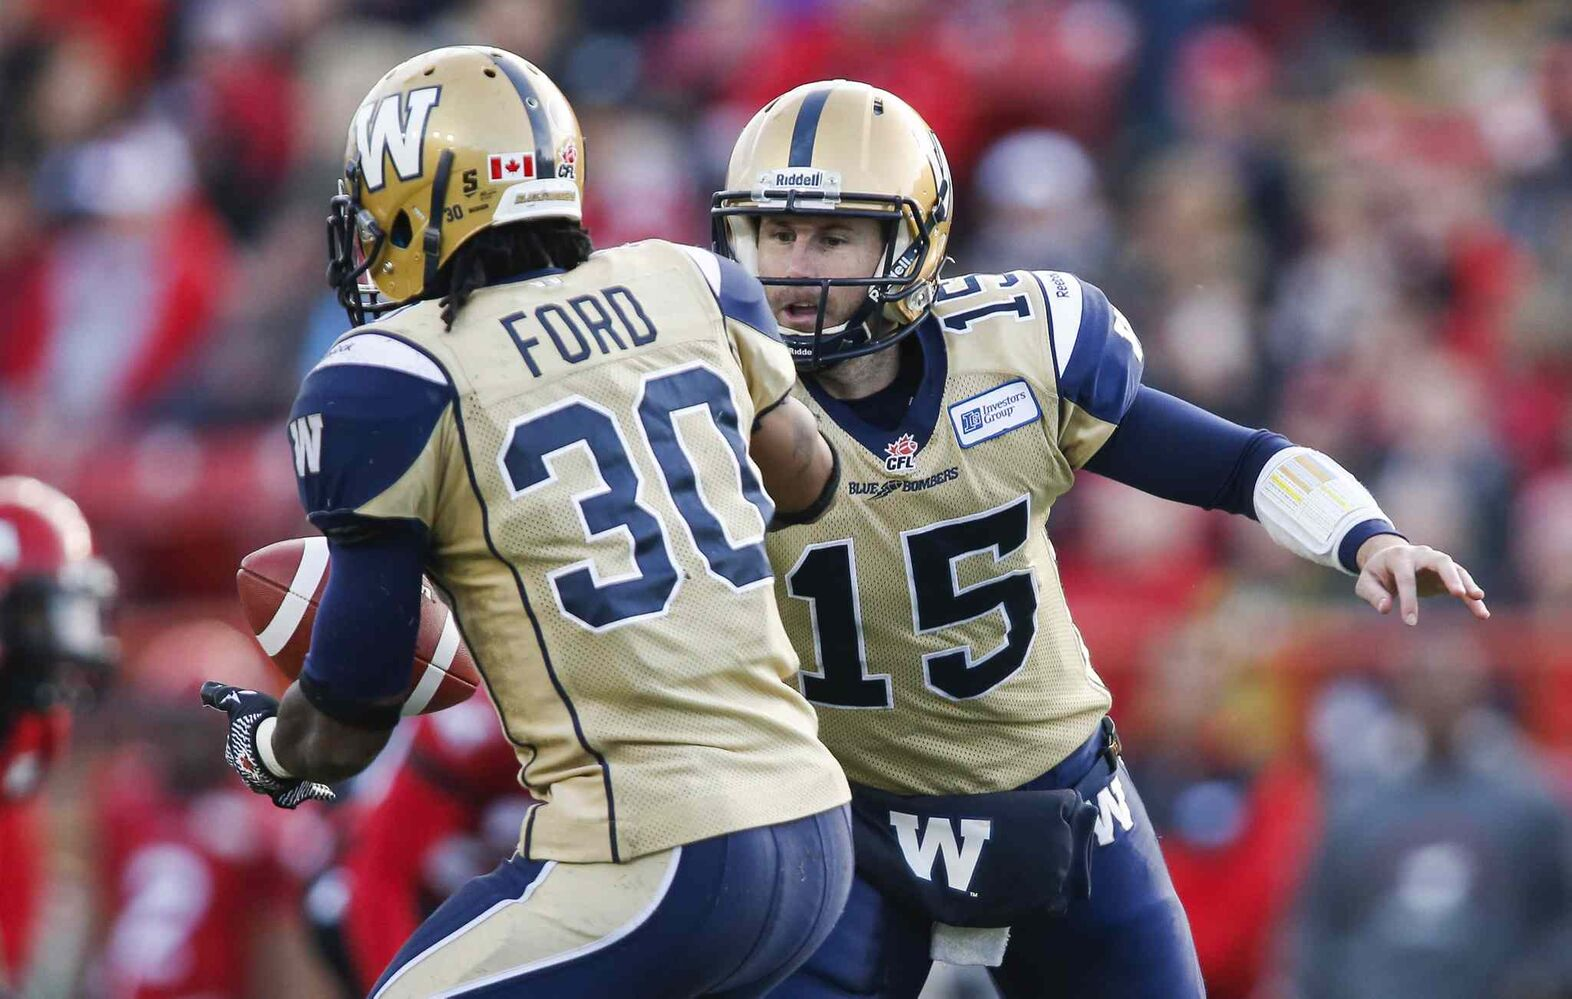 Winnipeg Blue Bombers quarterback Max Hall hands off the ball to teammate Will Ford during the first half. (Jeff McIntosh / The Canadian Press)